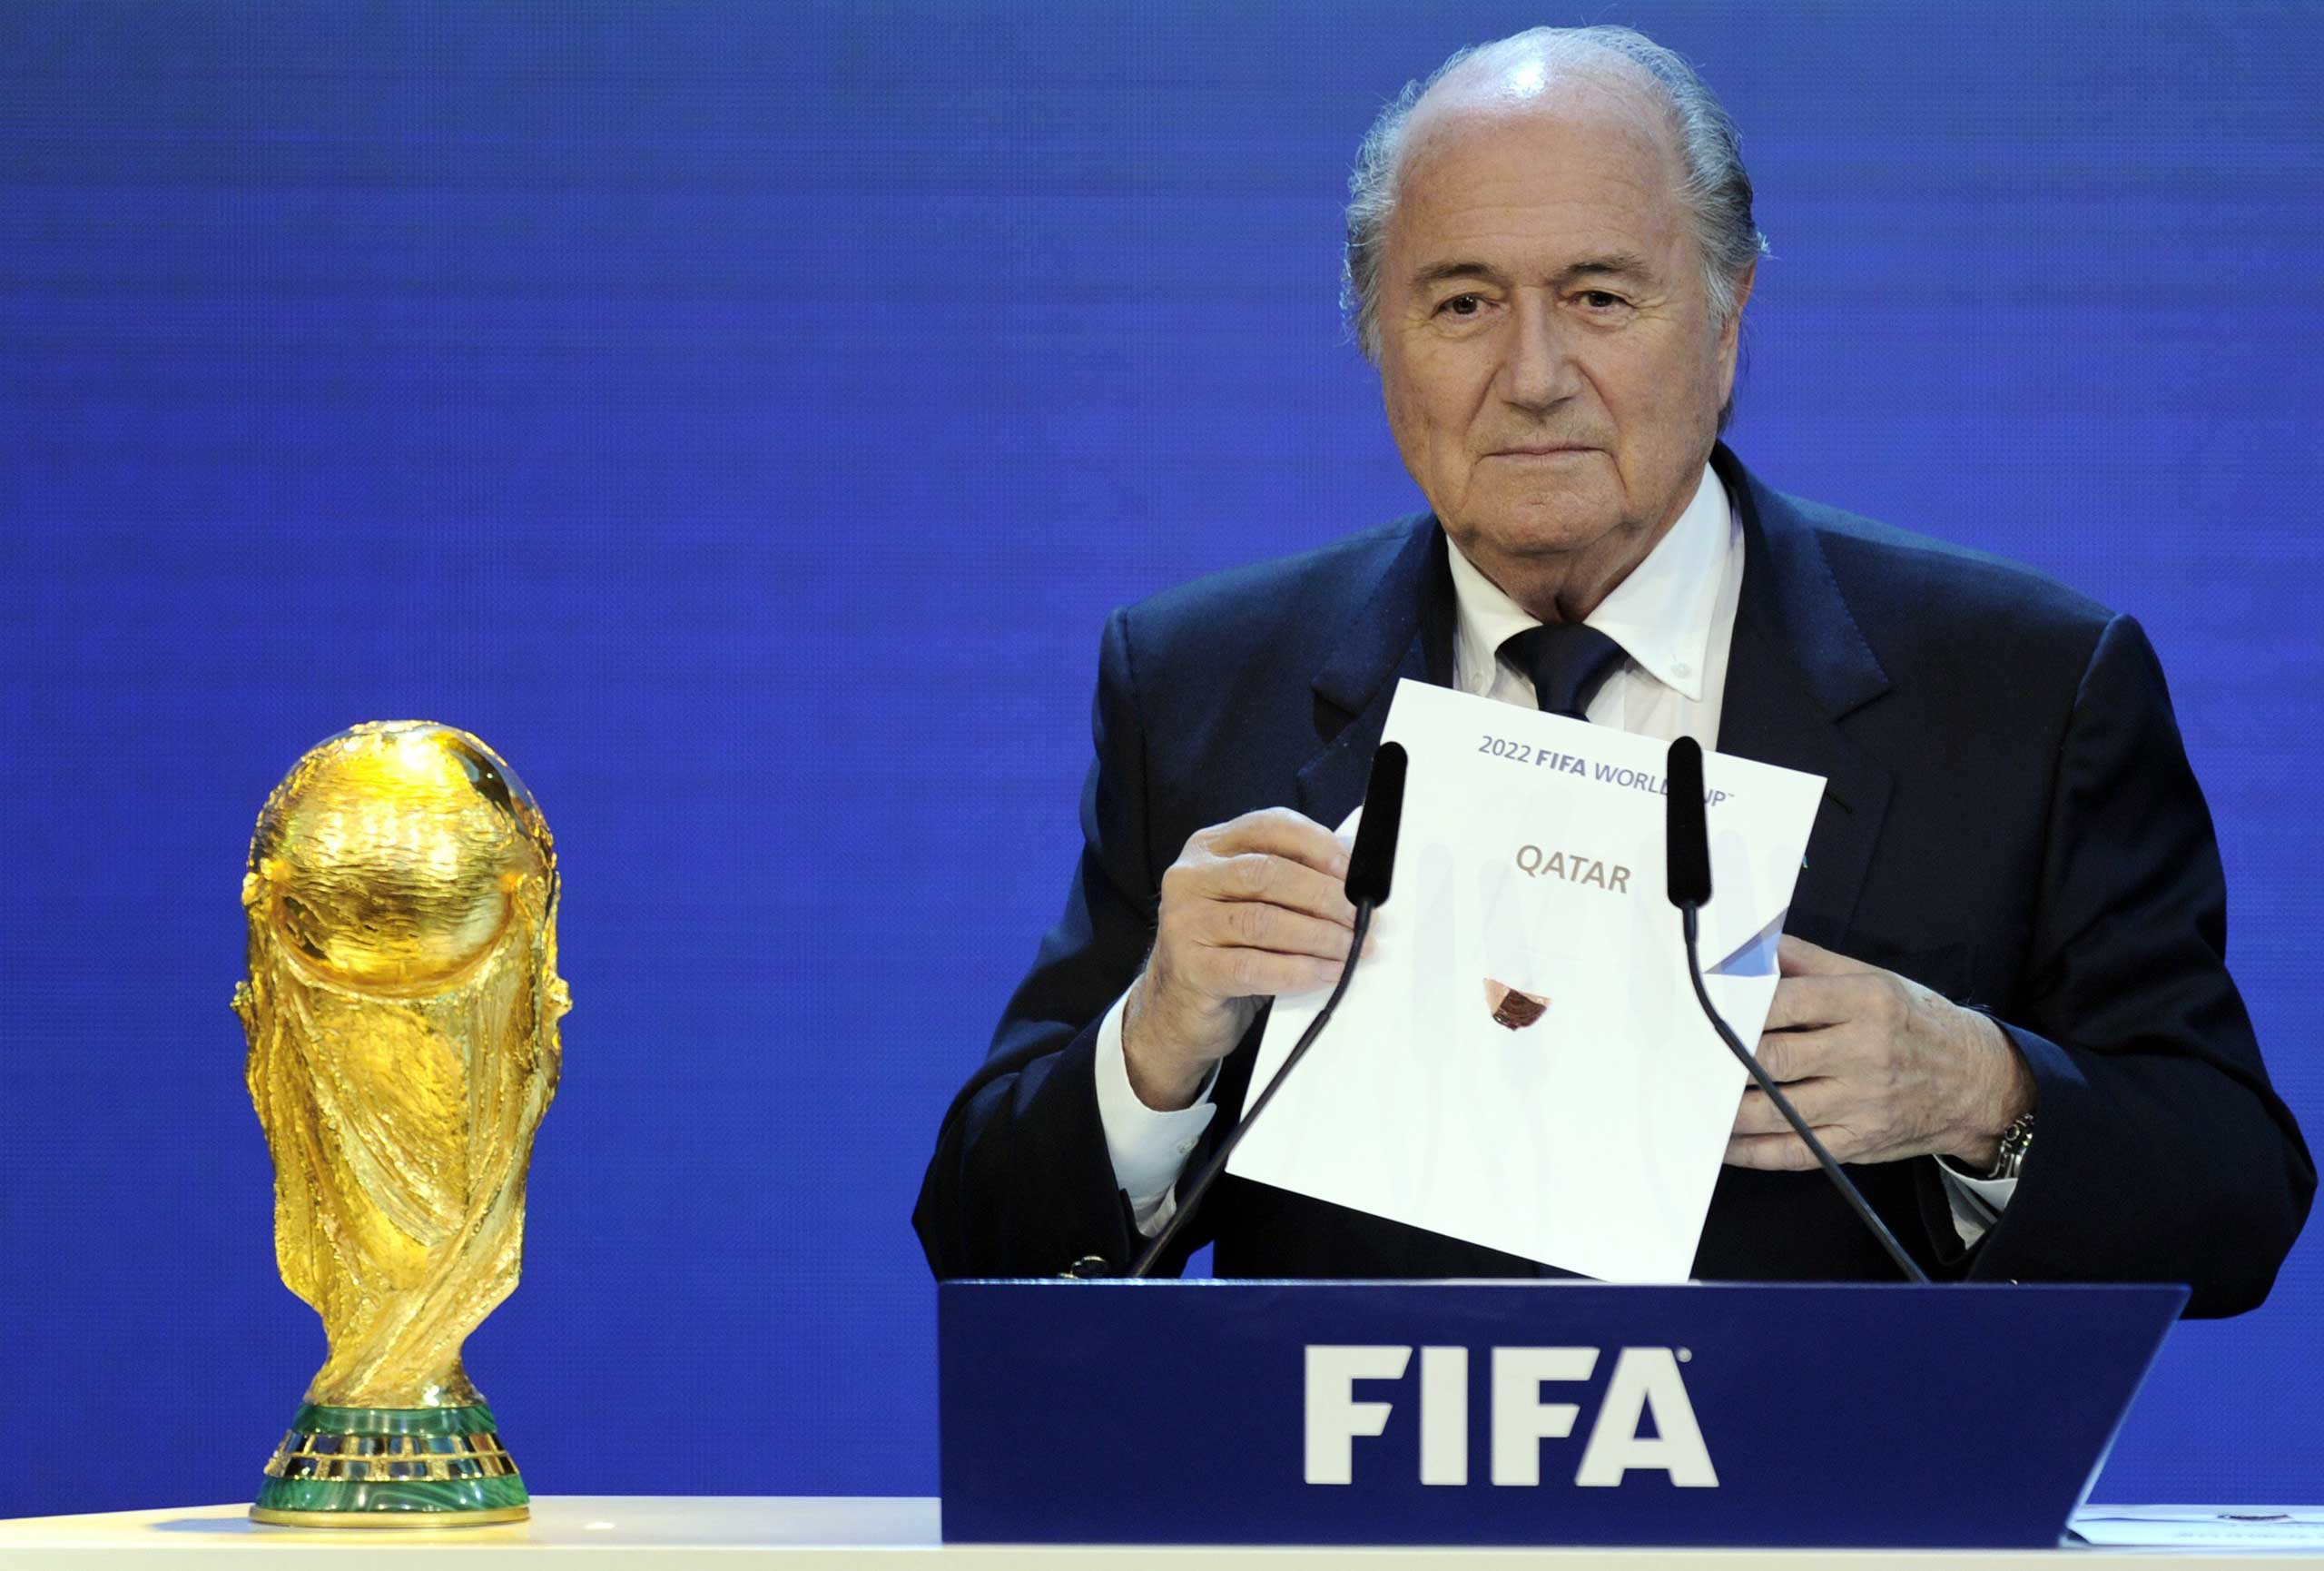 FIFA President Sepp Blatter holding up the name of Qatar during the official announcement of the 2022 World Cup host country at the FIFA headquarters  in Zurich, Dec. 2, 2010.